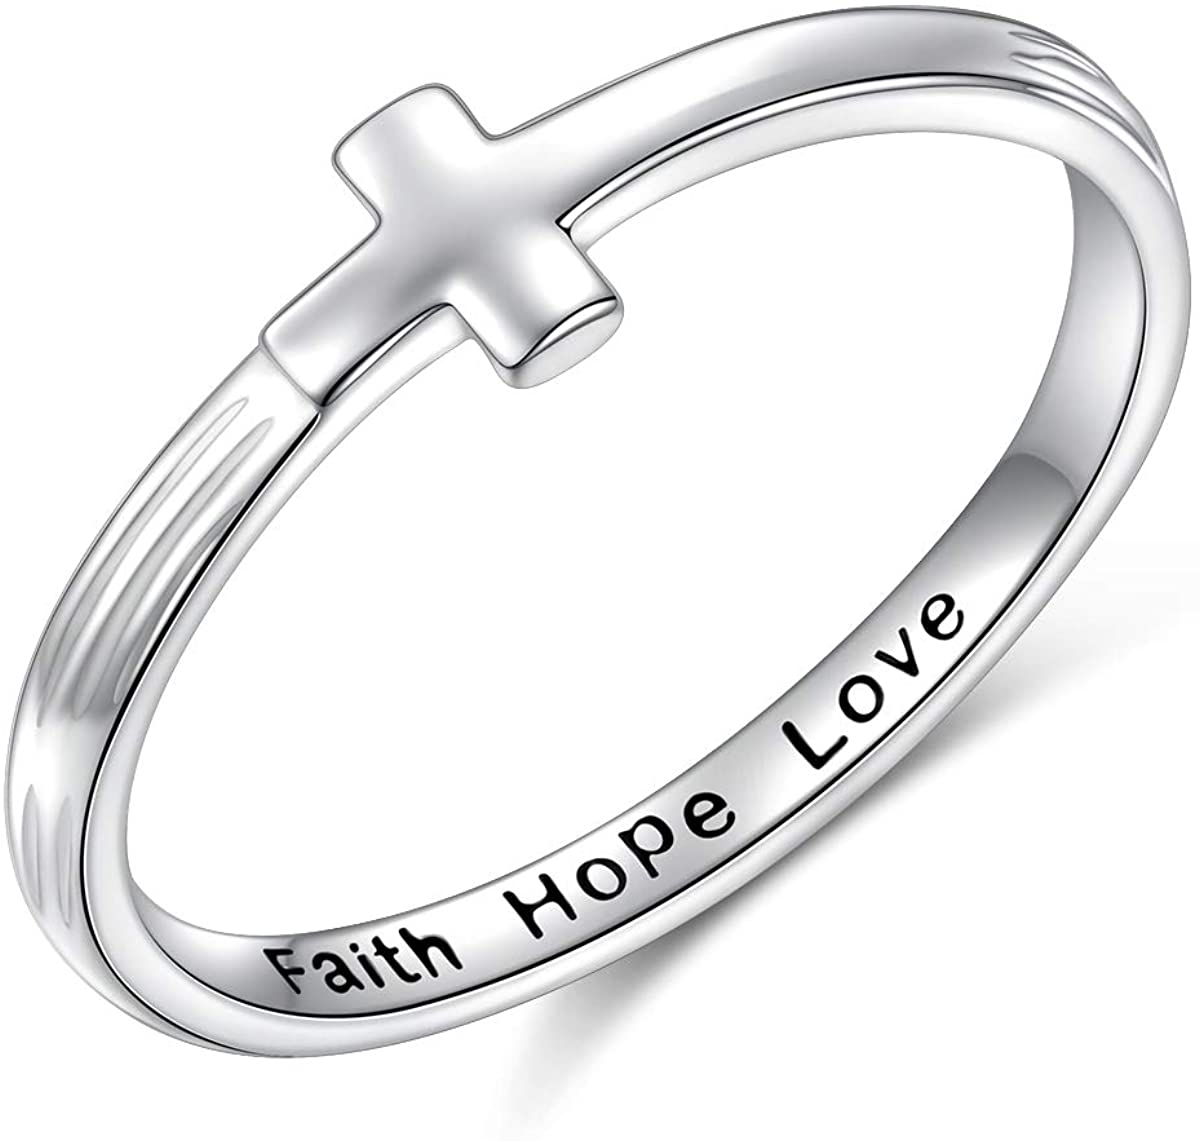 Inspirational Jewelry Sterling Silver Engraved Faith Hope Love Simple Cross Ring Christian Fashion Wedding Engagement Band, Size 5-10